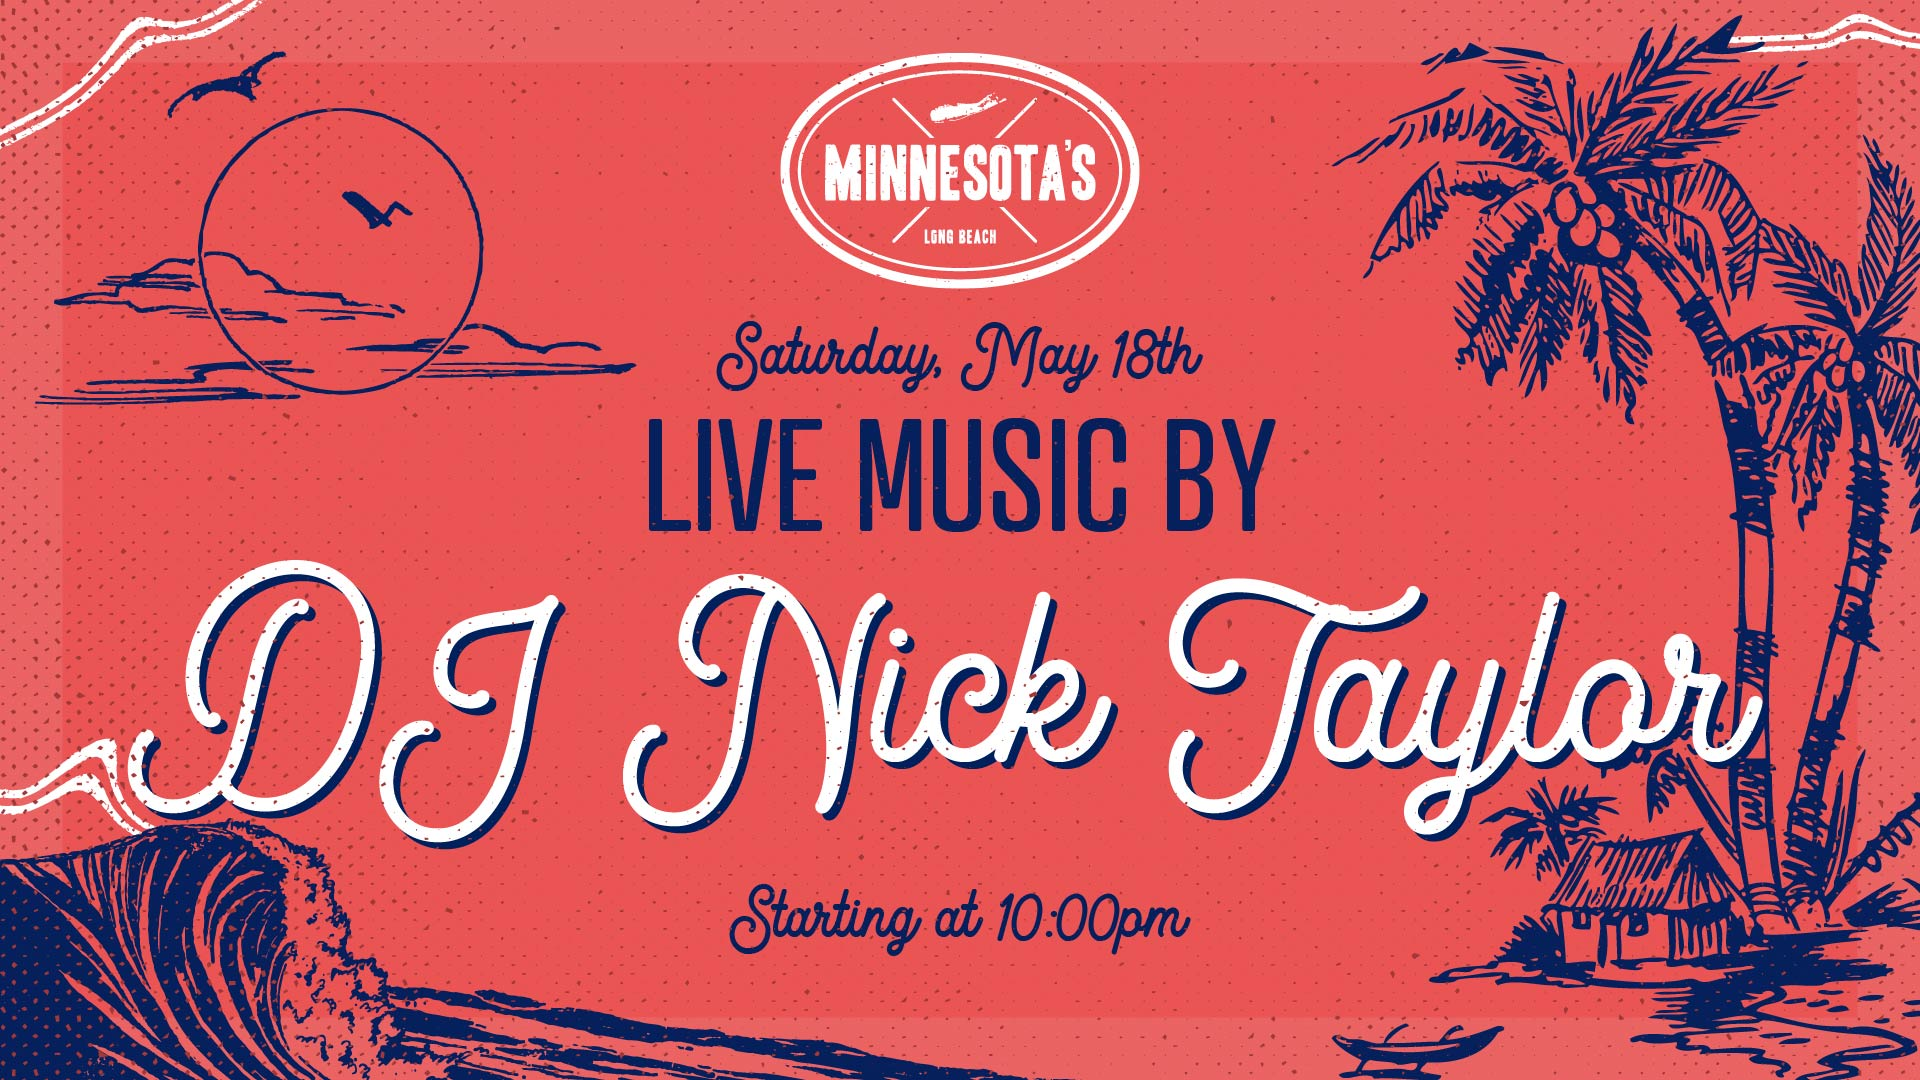 flyer for dj nick taylor at minnesotas on may 18th at 10pm